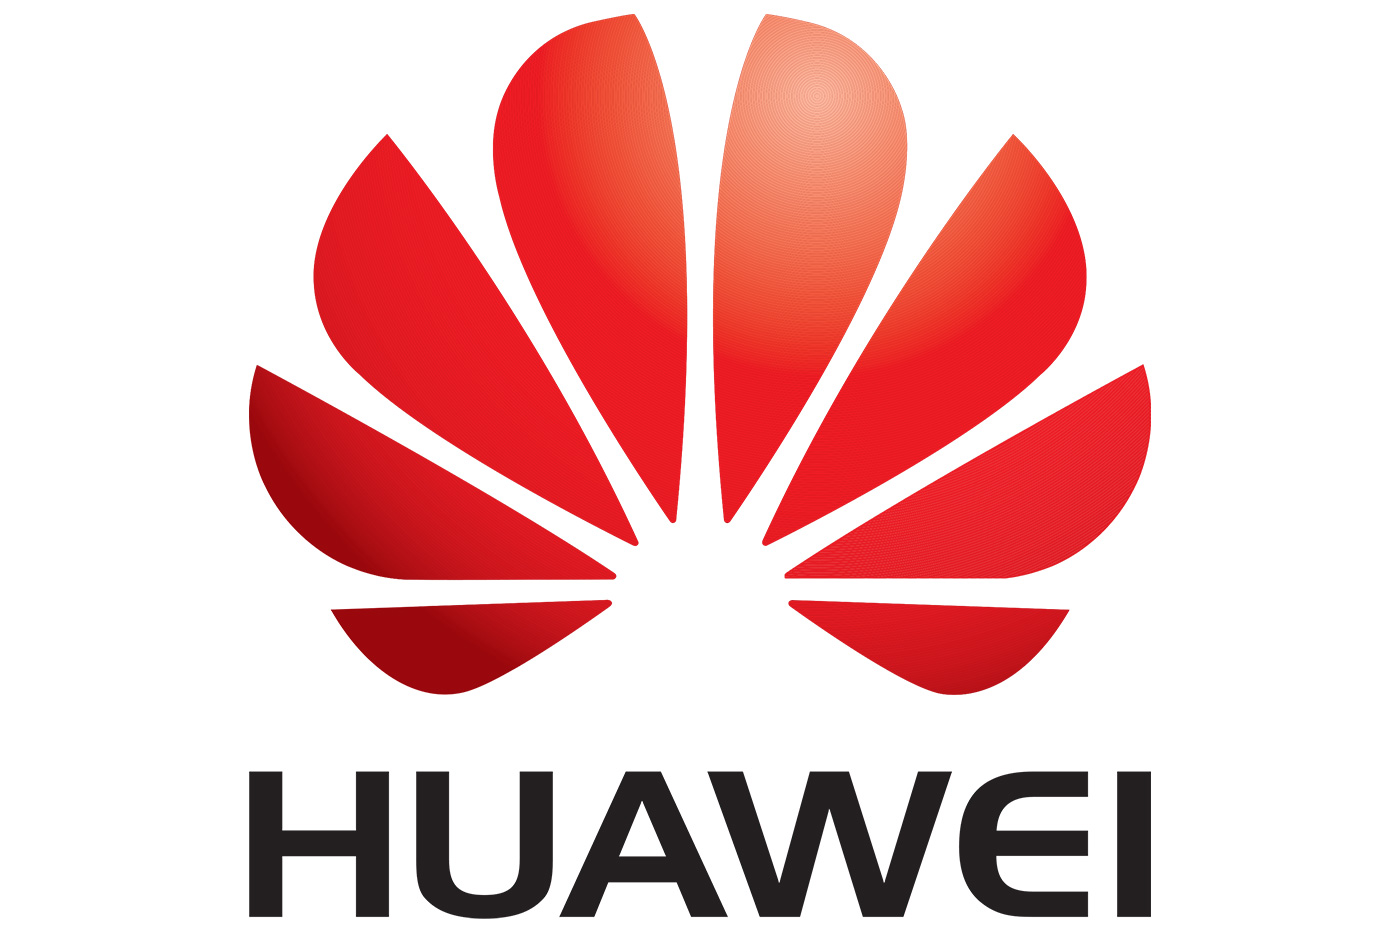 Huawei Logo - Soon Huawei will also need to find new display suppliers - FREDZONE